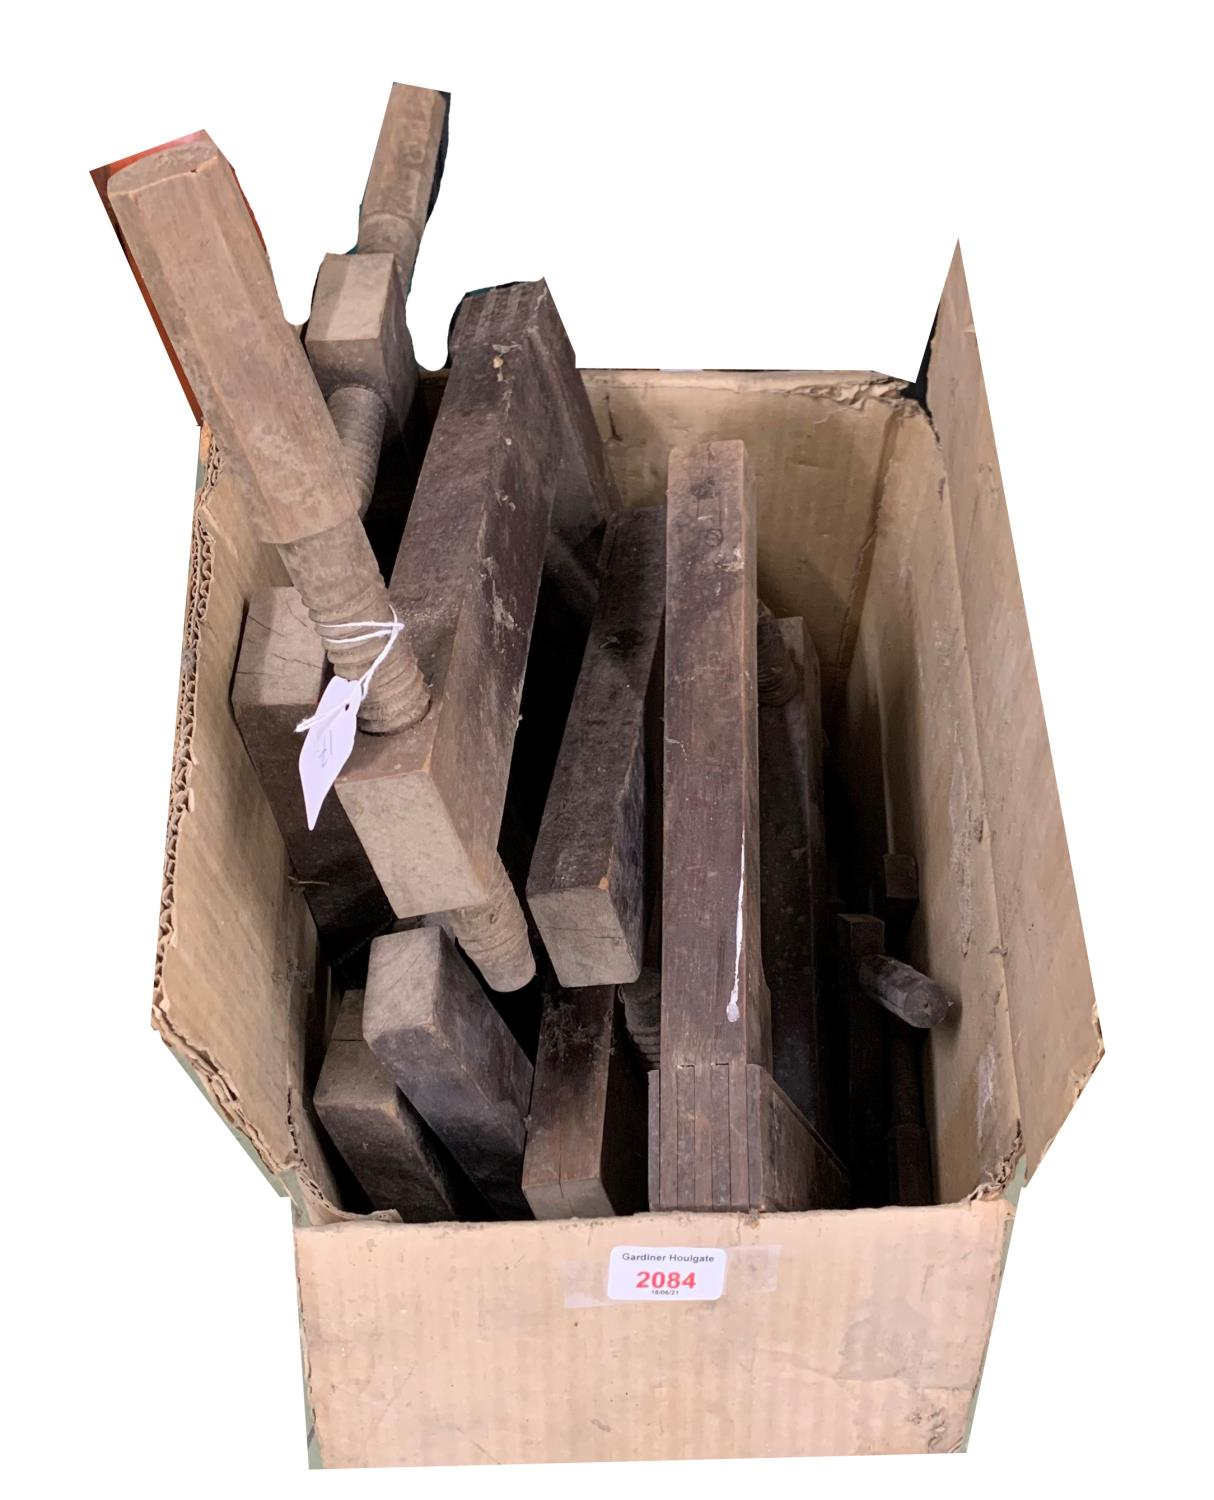 Quantity of wooden G clamps of various sizes